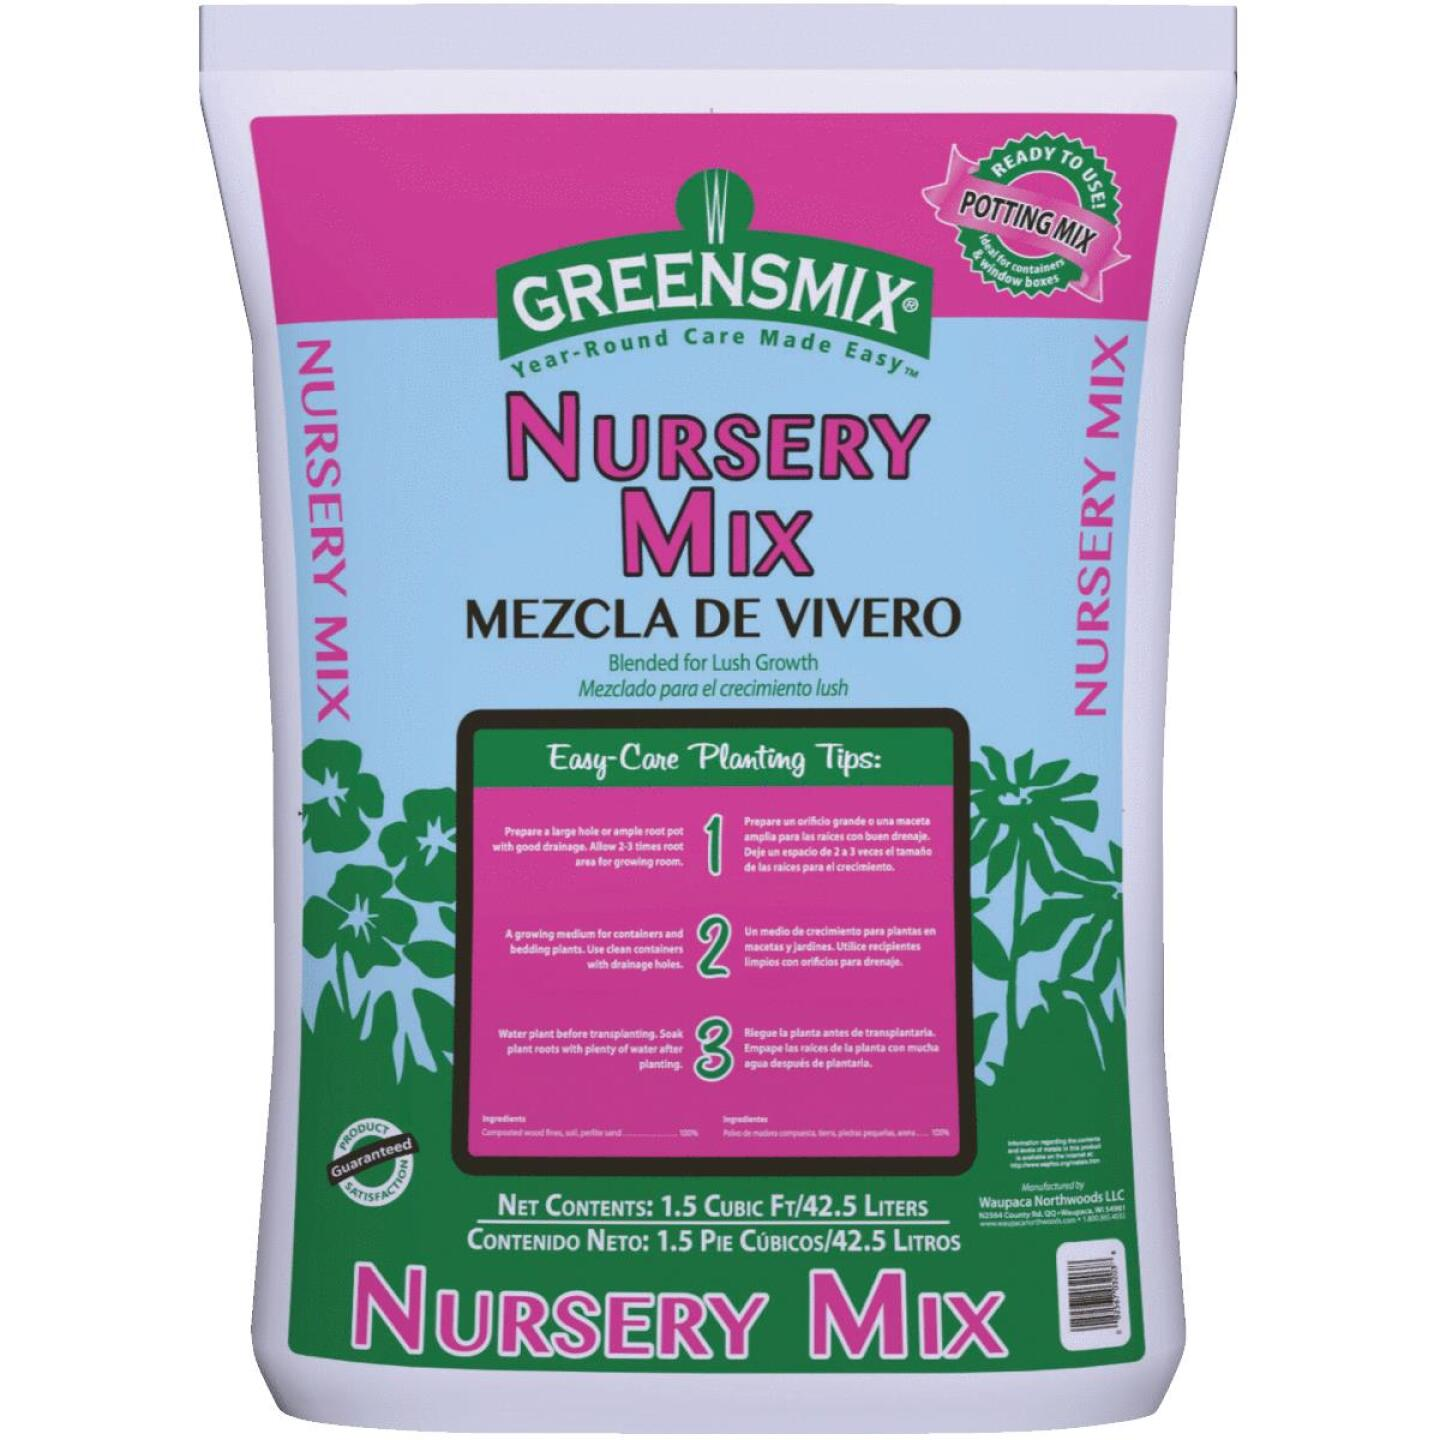 Greensmix Nursery Mix 1.5 Cu. Ft. 40 Lb. All Purpose Potting Soil Image 1